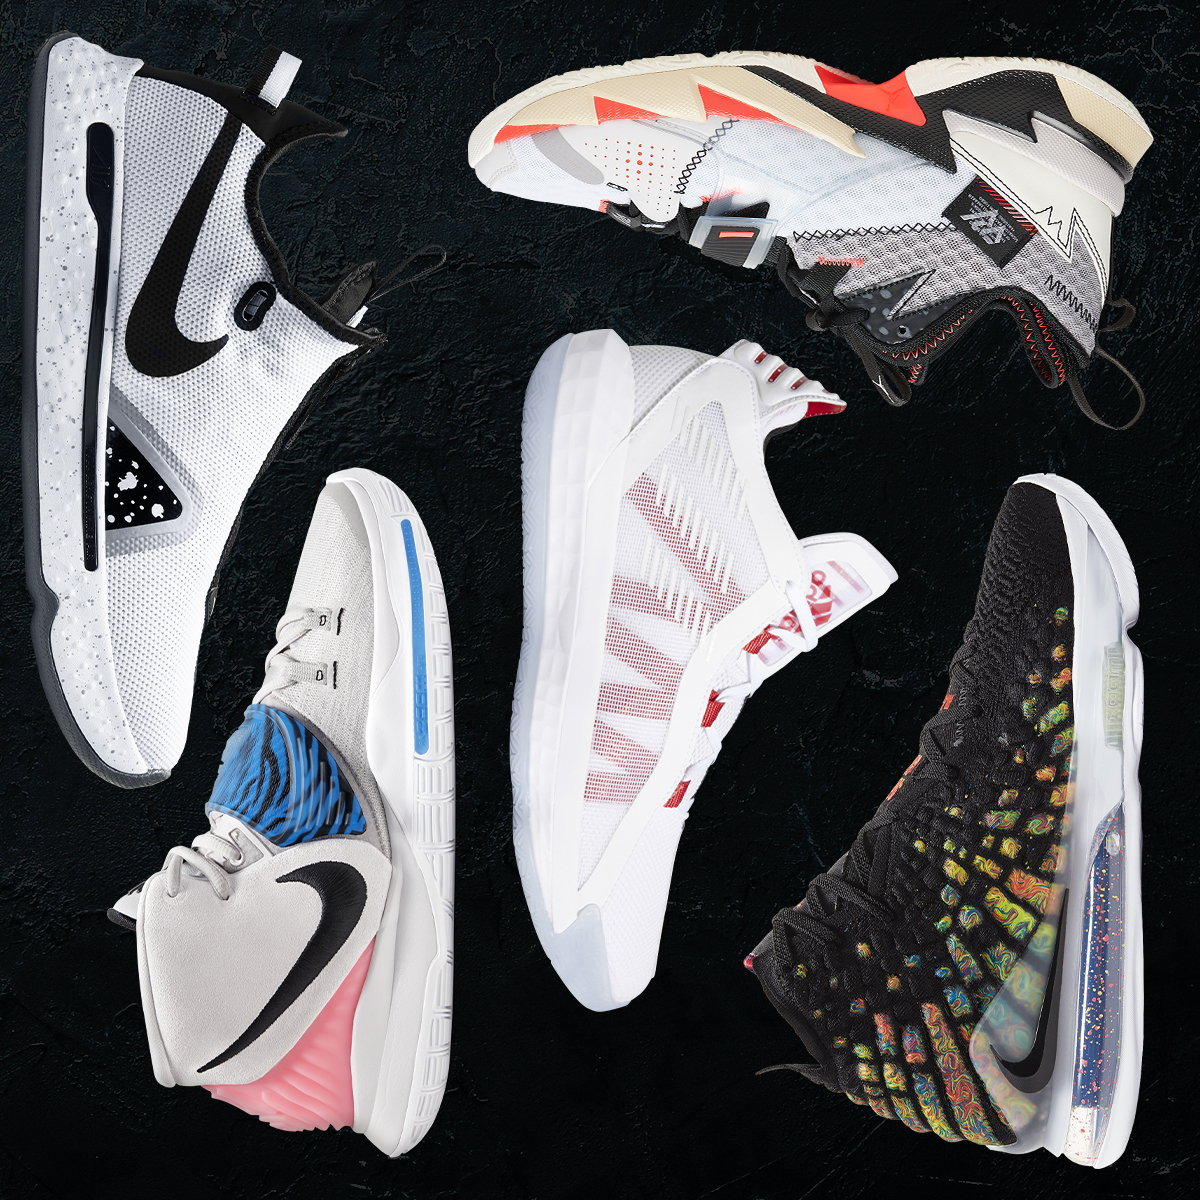 Best Performance Basketball Shoes 2021 Best Basketball Shoes | Eastbay Blog : Eastbay Blog